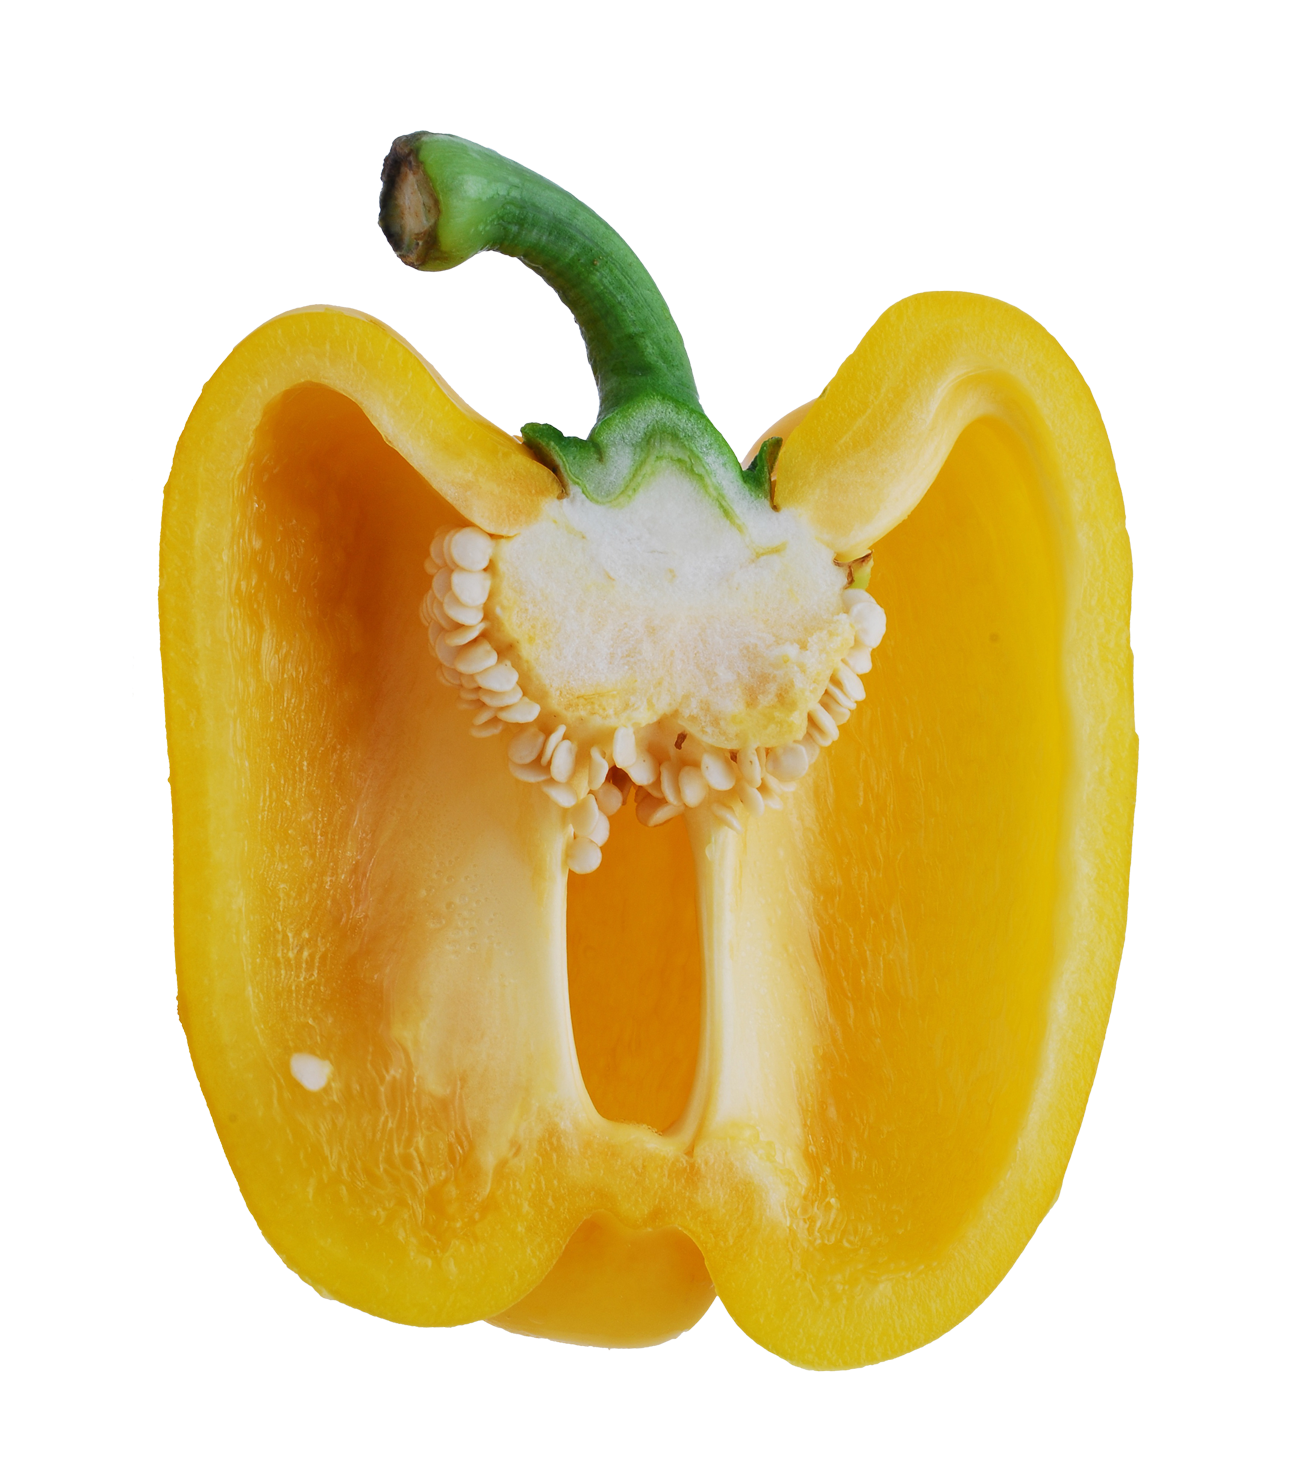 Pepper transparent sweet. Bell half png image